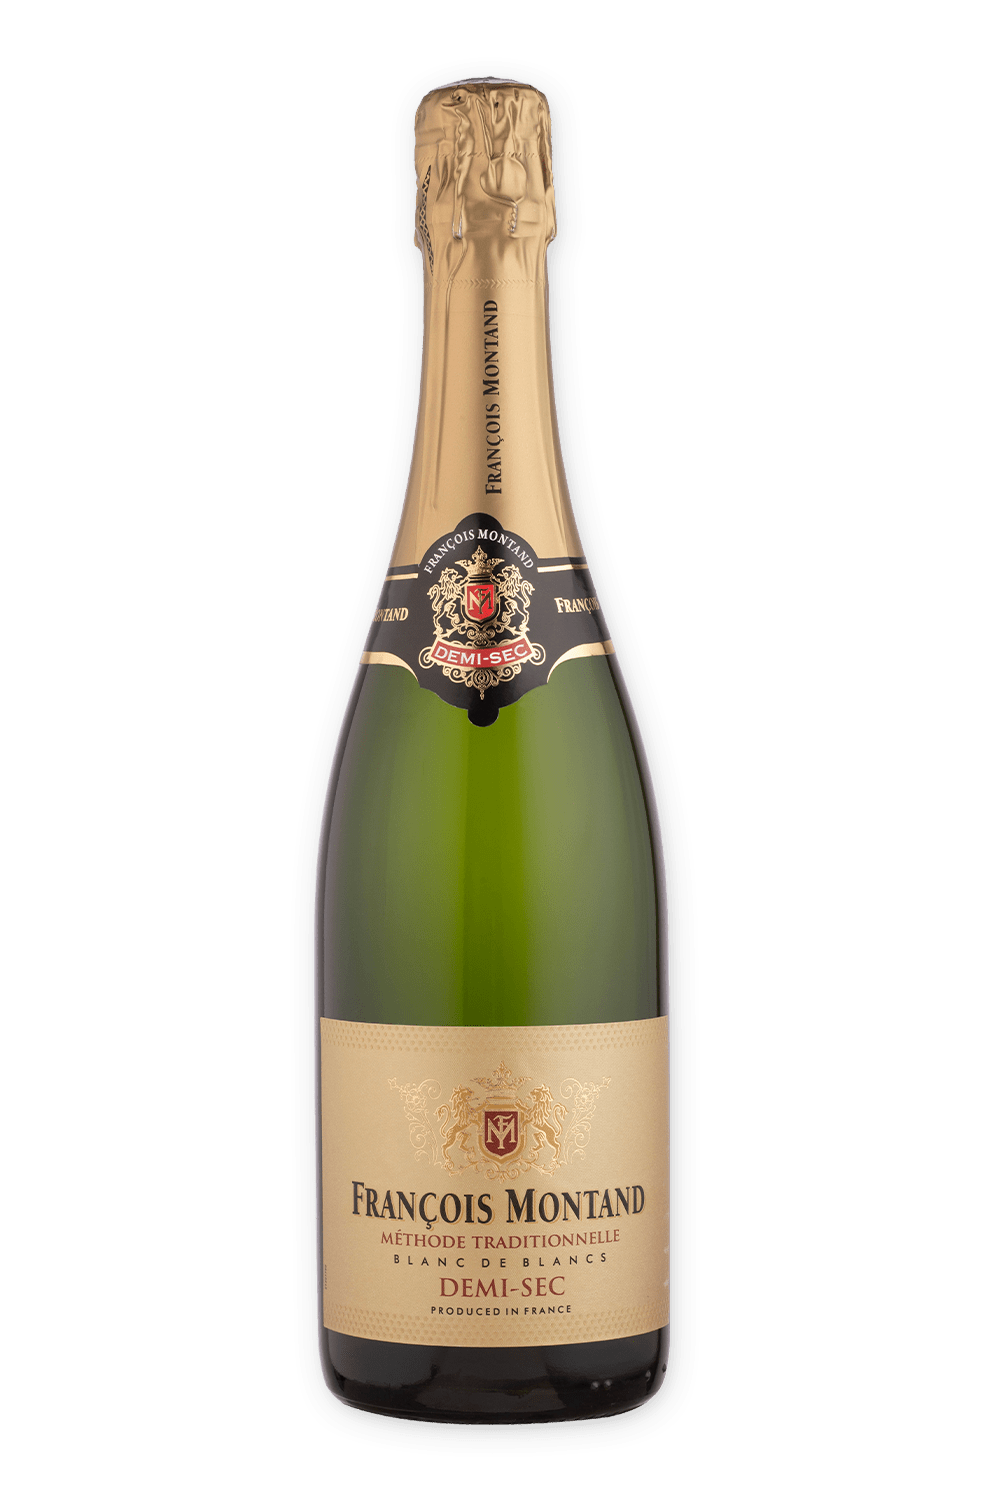 Francois-Montand-Blanc-De-Blancs-Methode-Traditionnelle-Demi-Sec